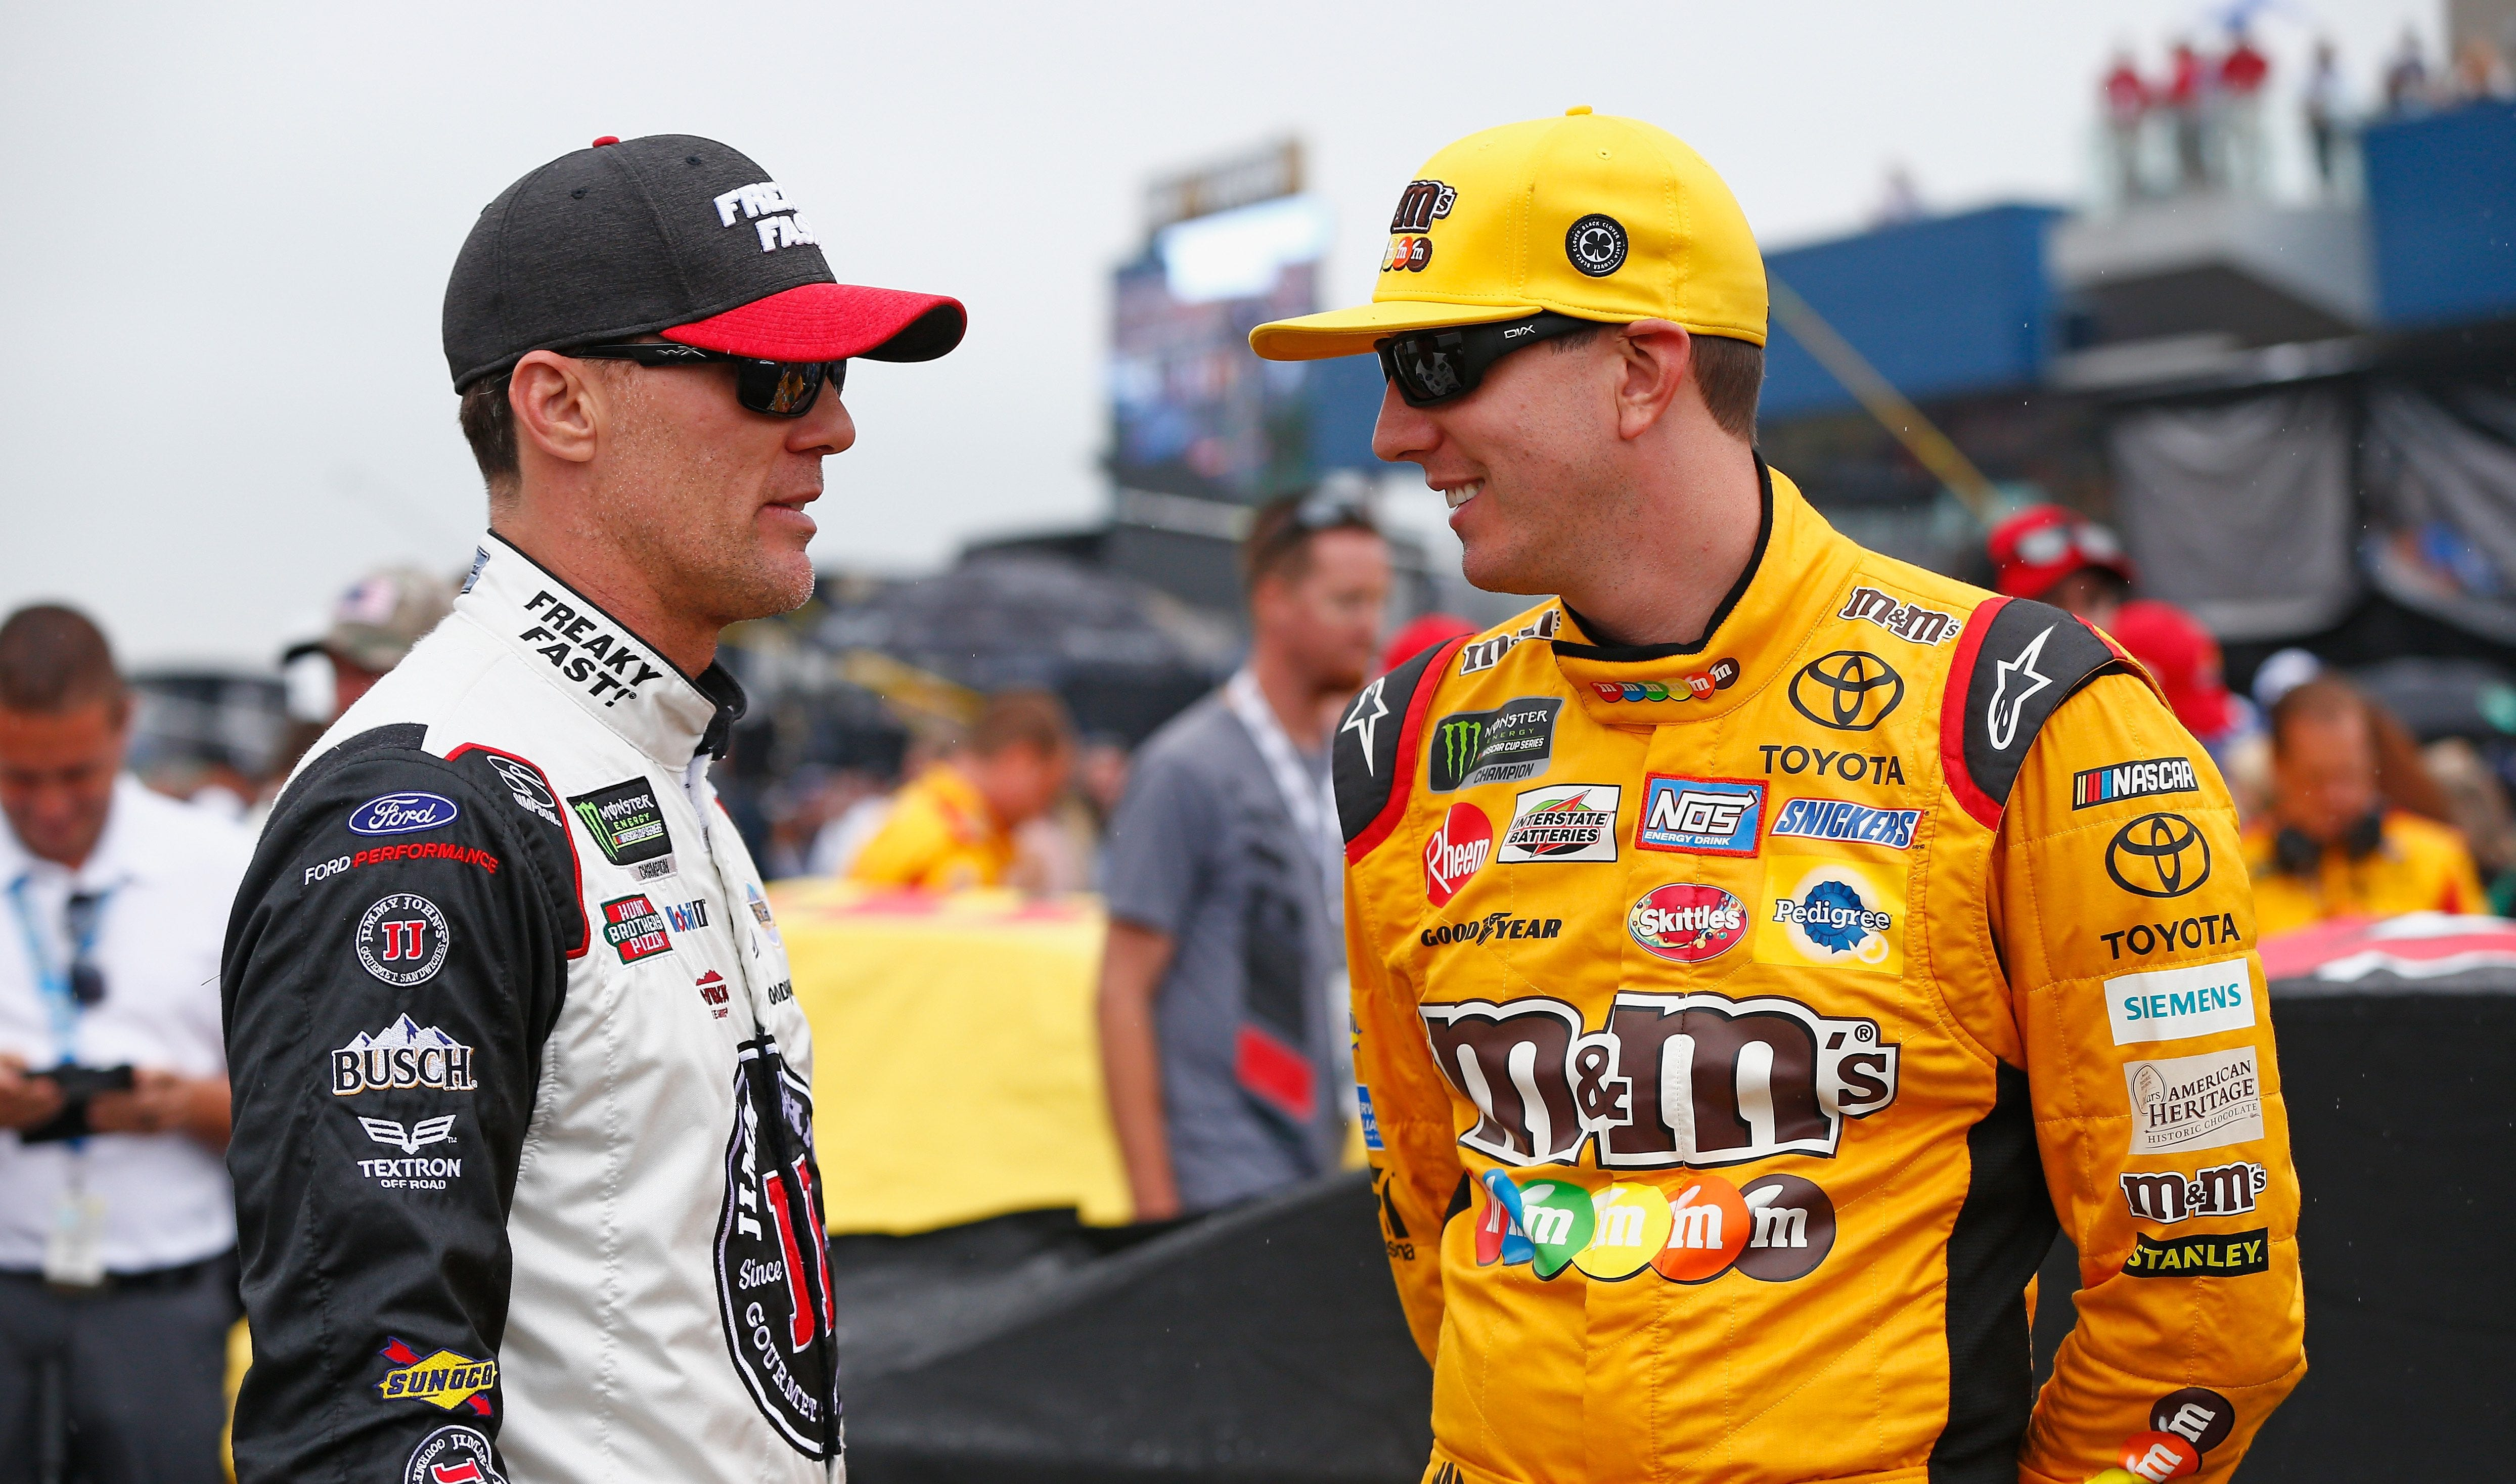 NASCAR drivers to watch at Charlotte's Coca-Cola 600